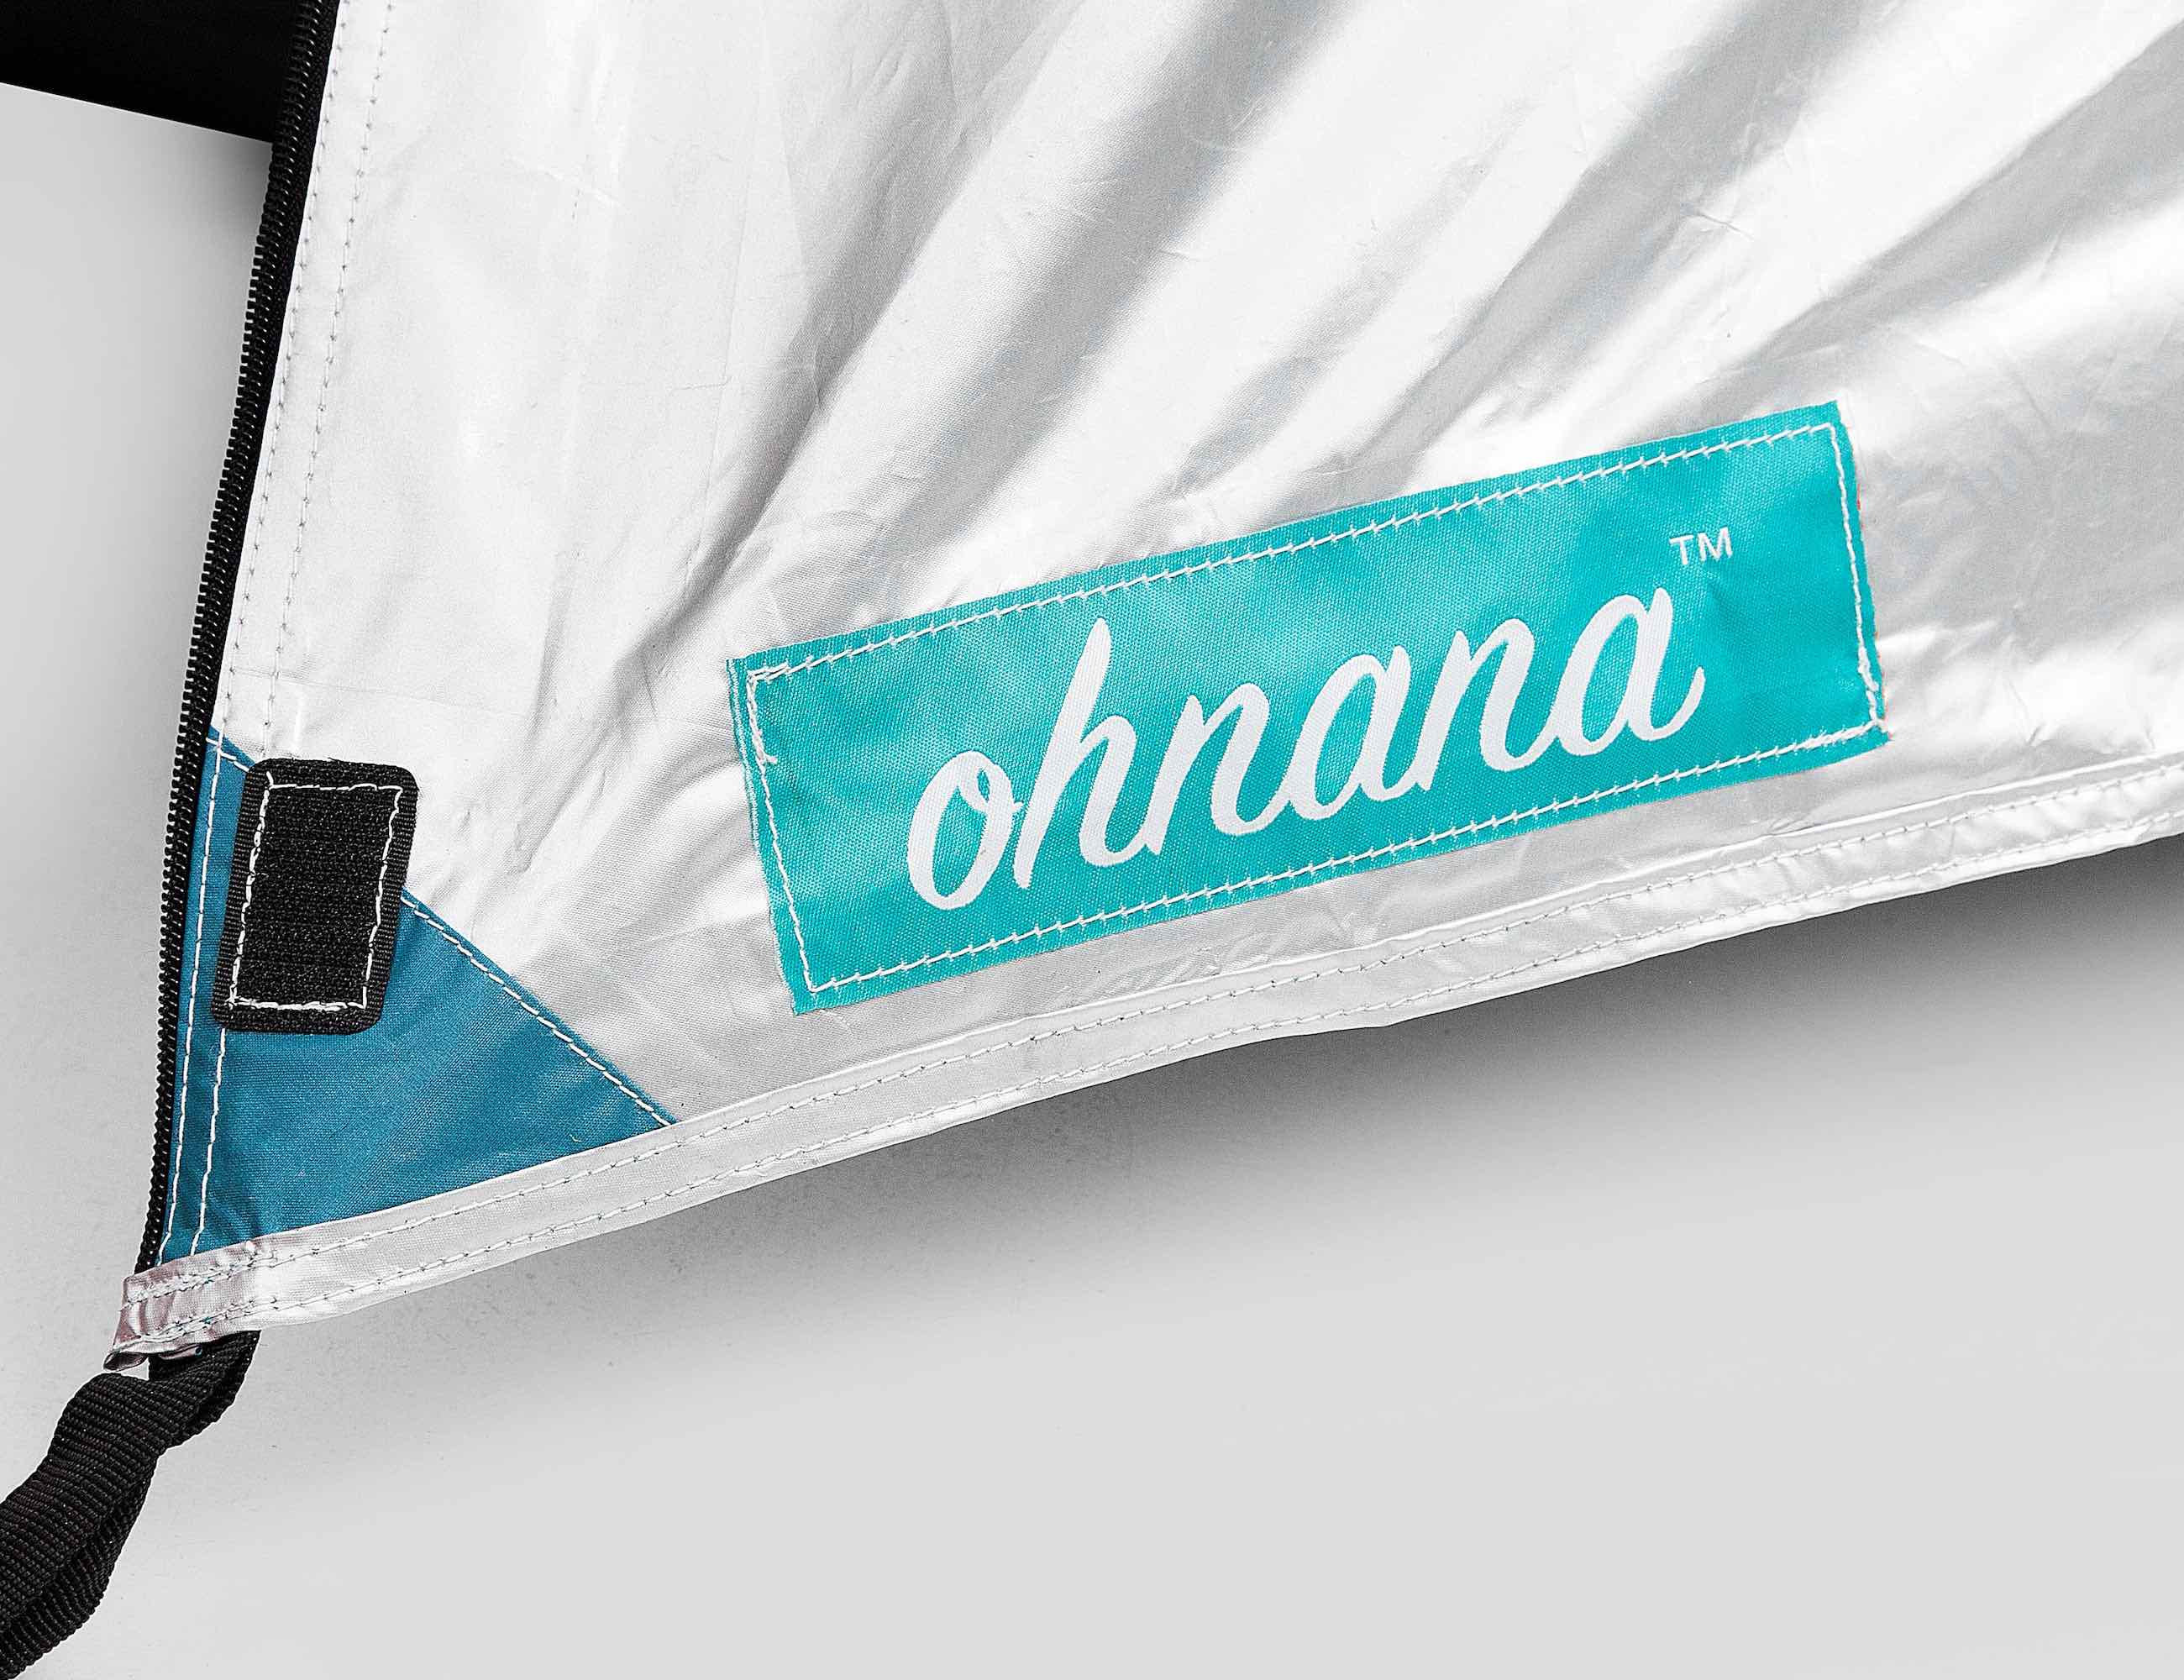 Ohnana Cooling Festival Tent